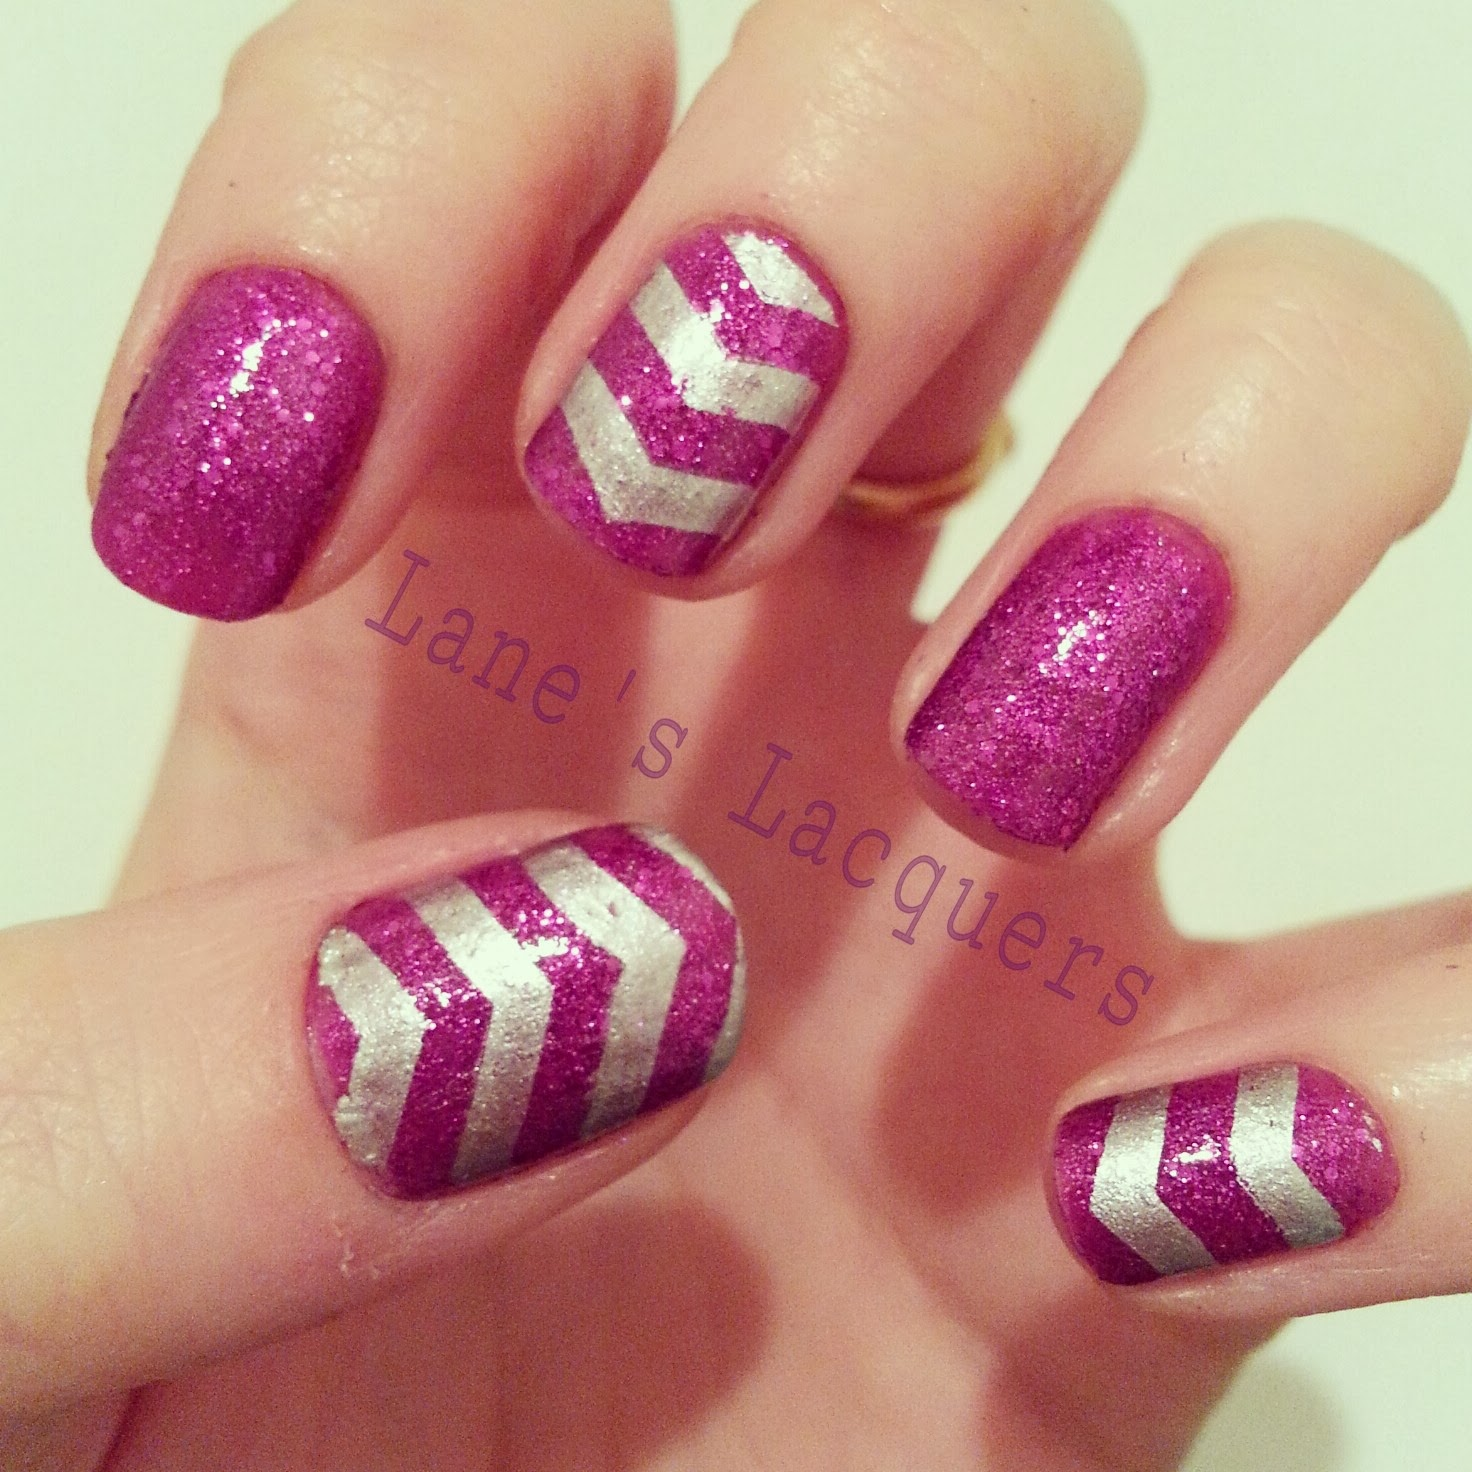 GOT-polish-challenge-chevron-manicure